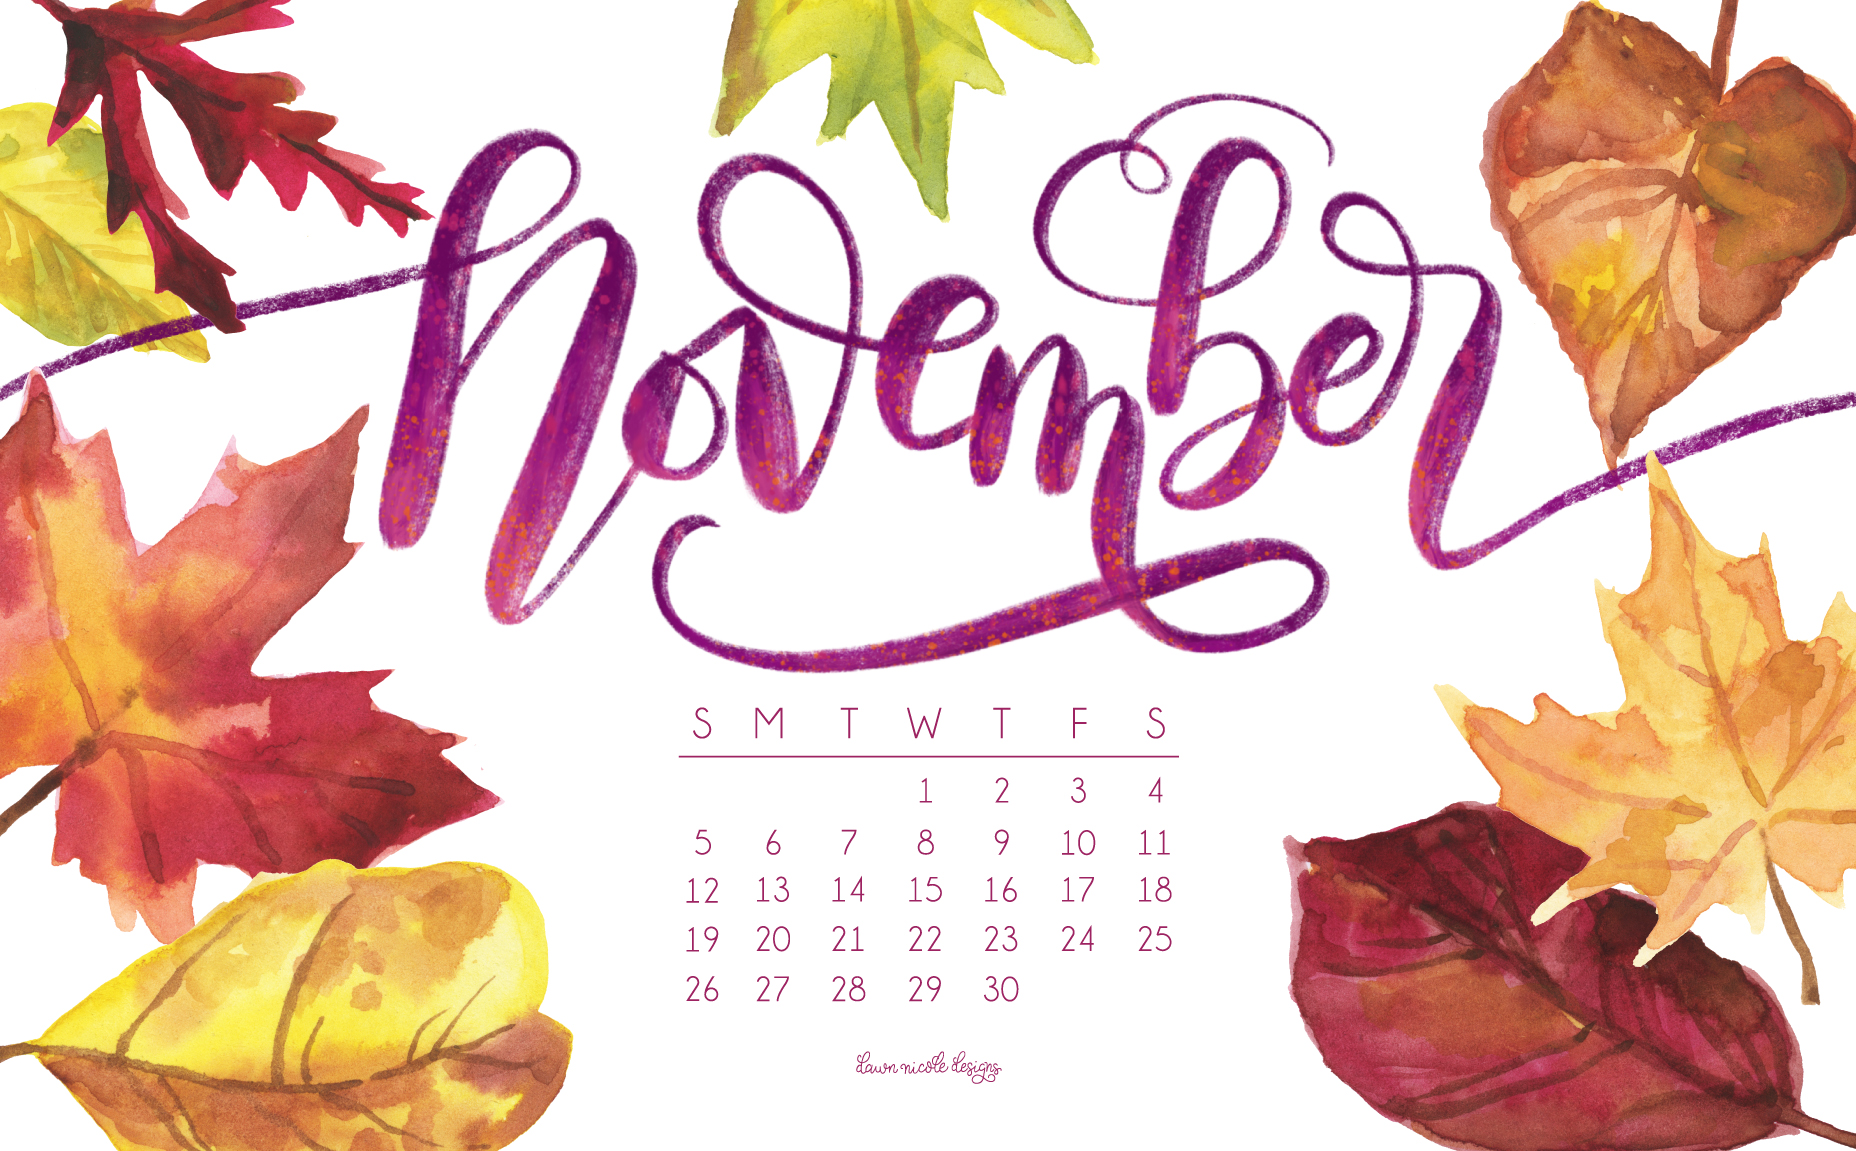 November art incep imagine. Calendar clipart autumn